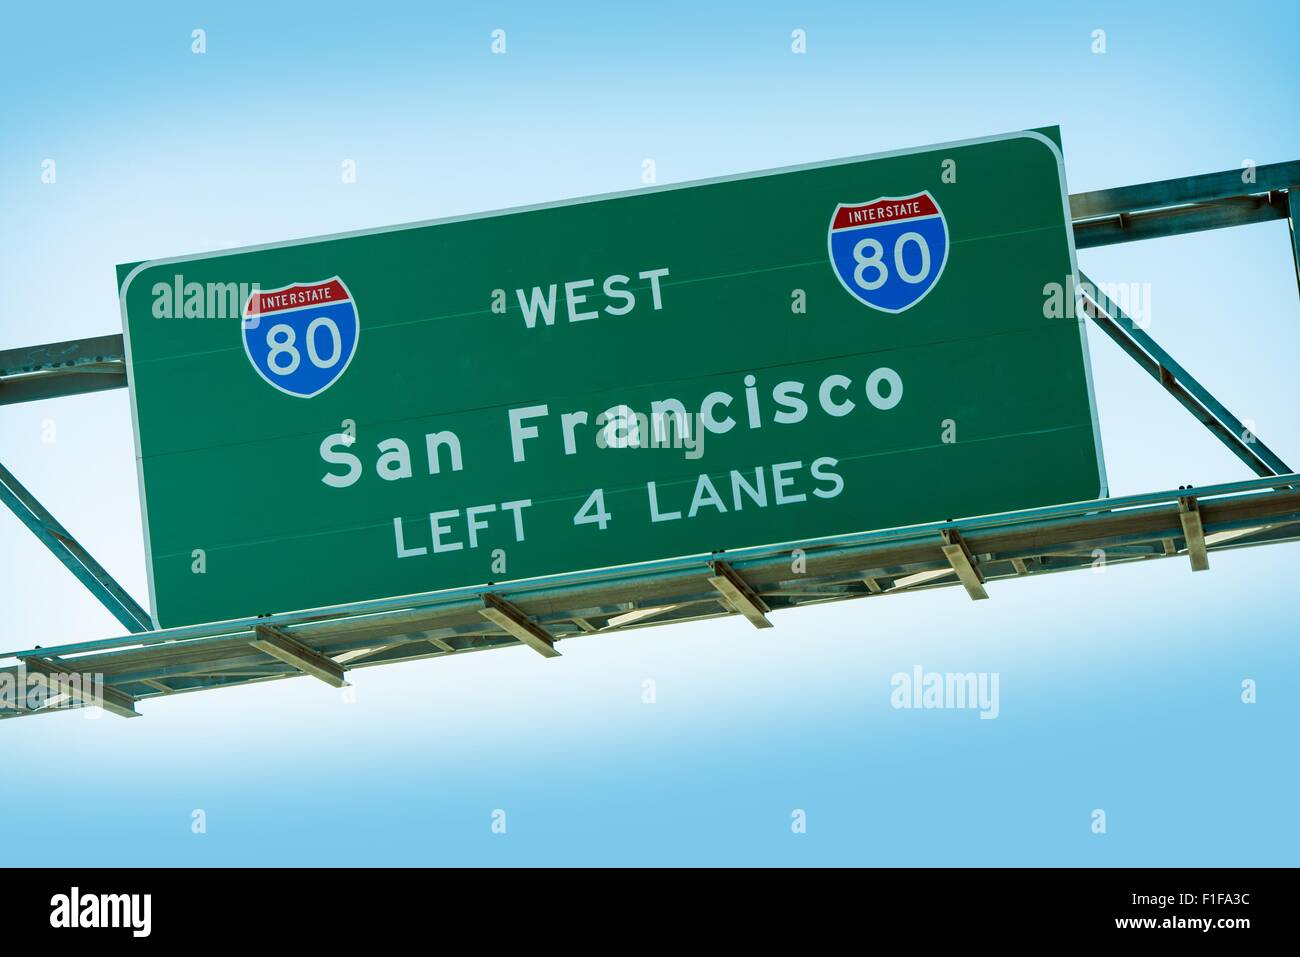 San Francisco Interstate 80 Highway Sign Closeup. American Interstates System. - Stock Image